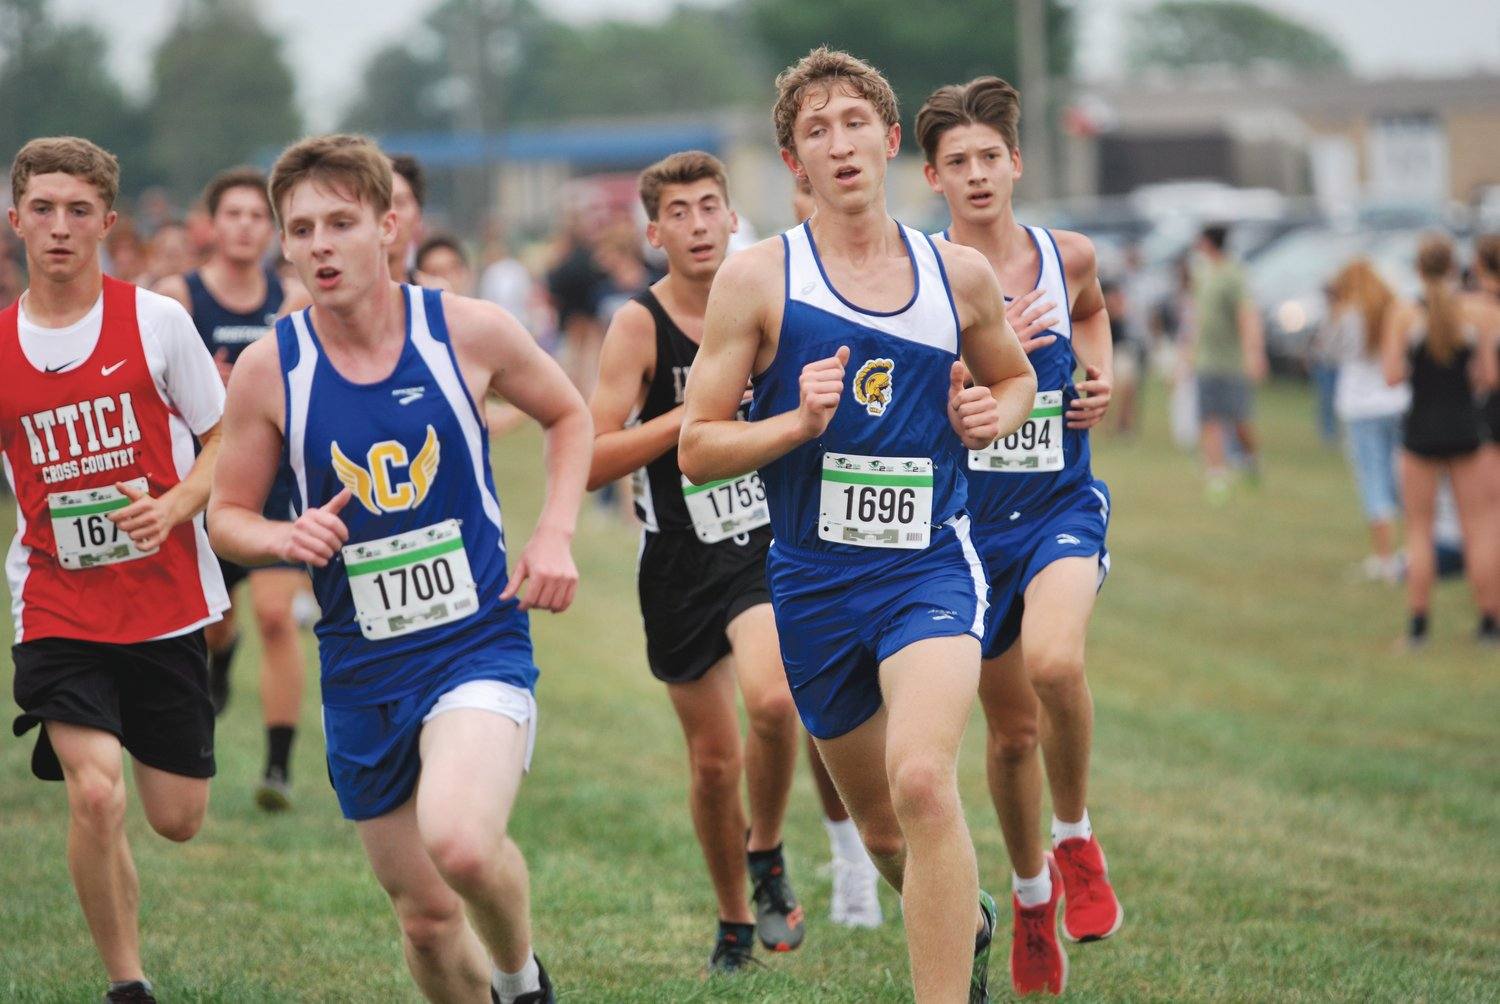 Crawfordsville's Nathaniel Million, Ian Hensley, and Roman Contreras pack run for the Athenians at the Charger Classic on Thursday.